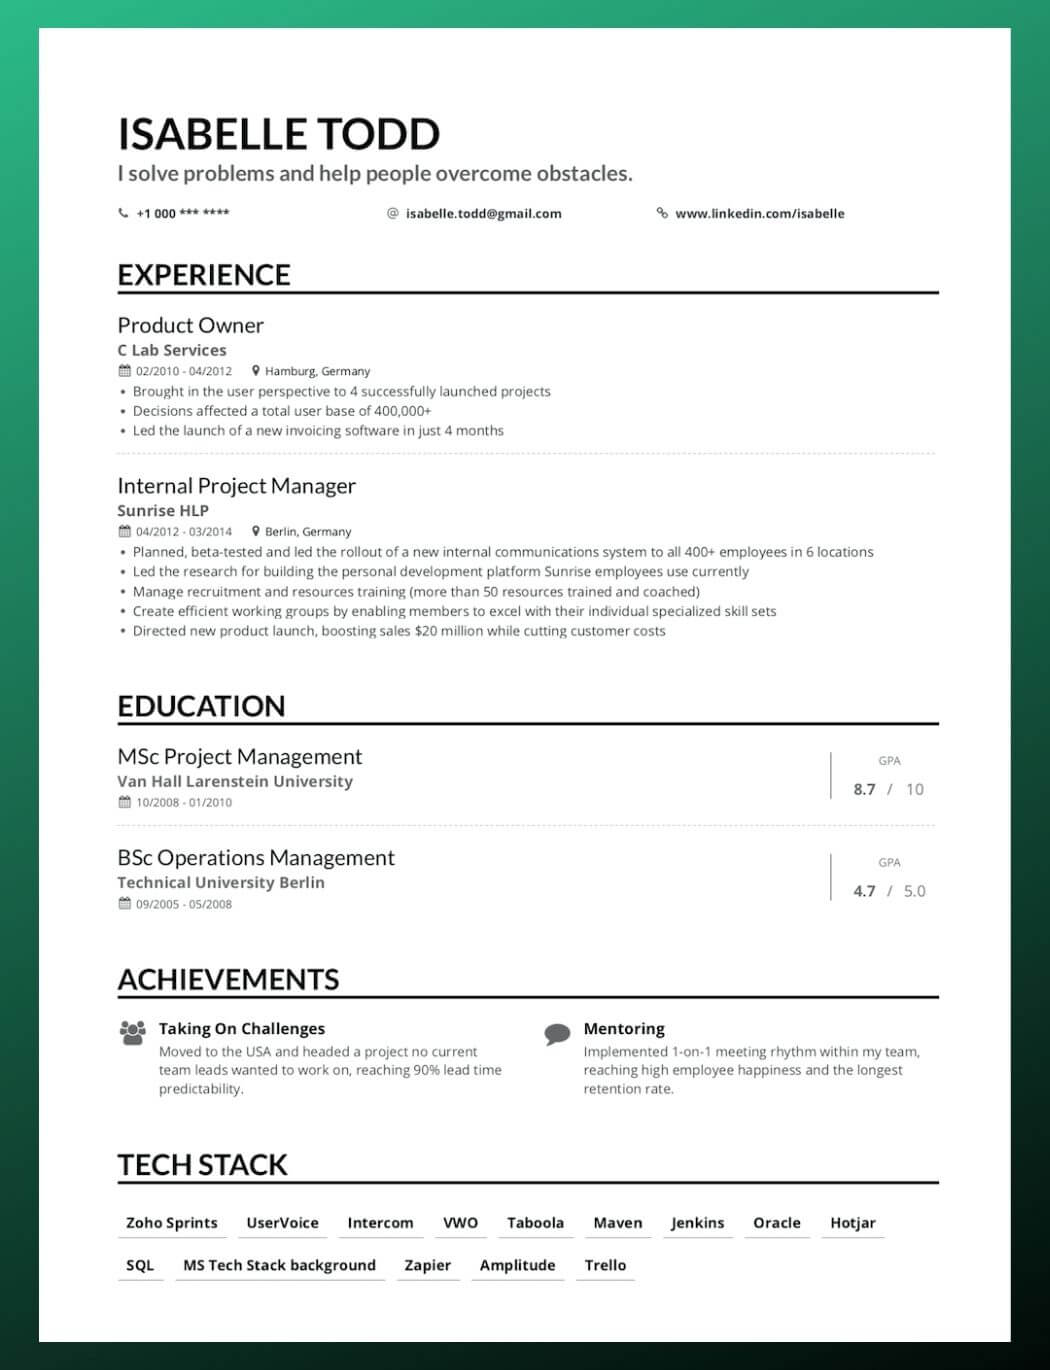 english enhancv plain text resume pros and cons single column template save as forklift Resume Plain Text Resume Pros And Cons